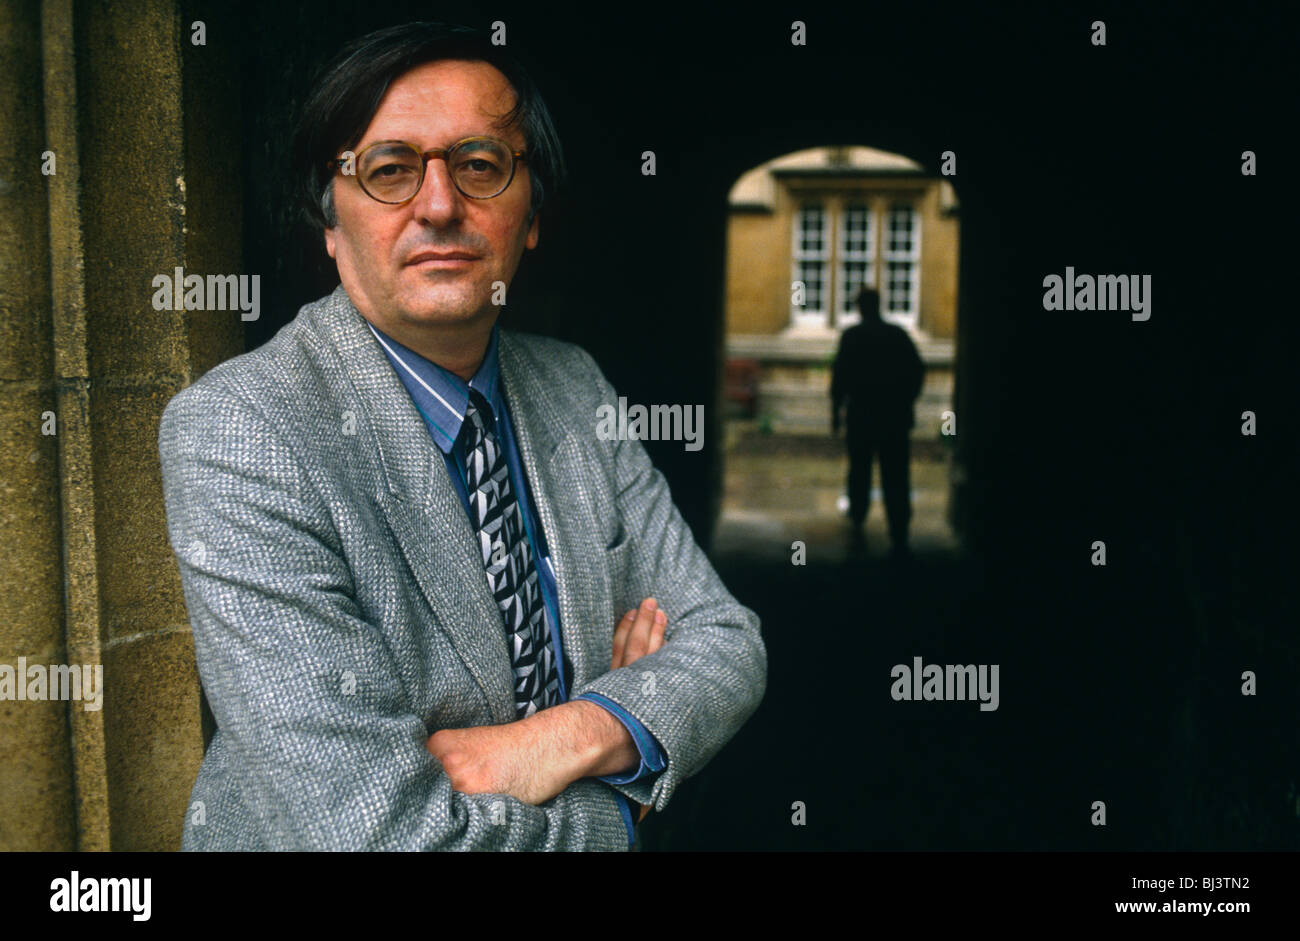 Political scientist John Gray, stands in doorway wearing  grey jacket and round-frame glasses in Quadrangle of Jesus - Stock Image